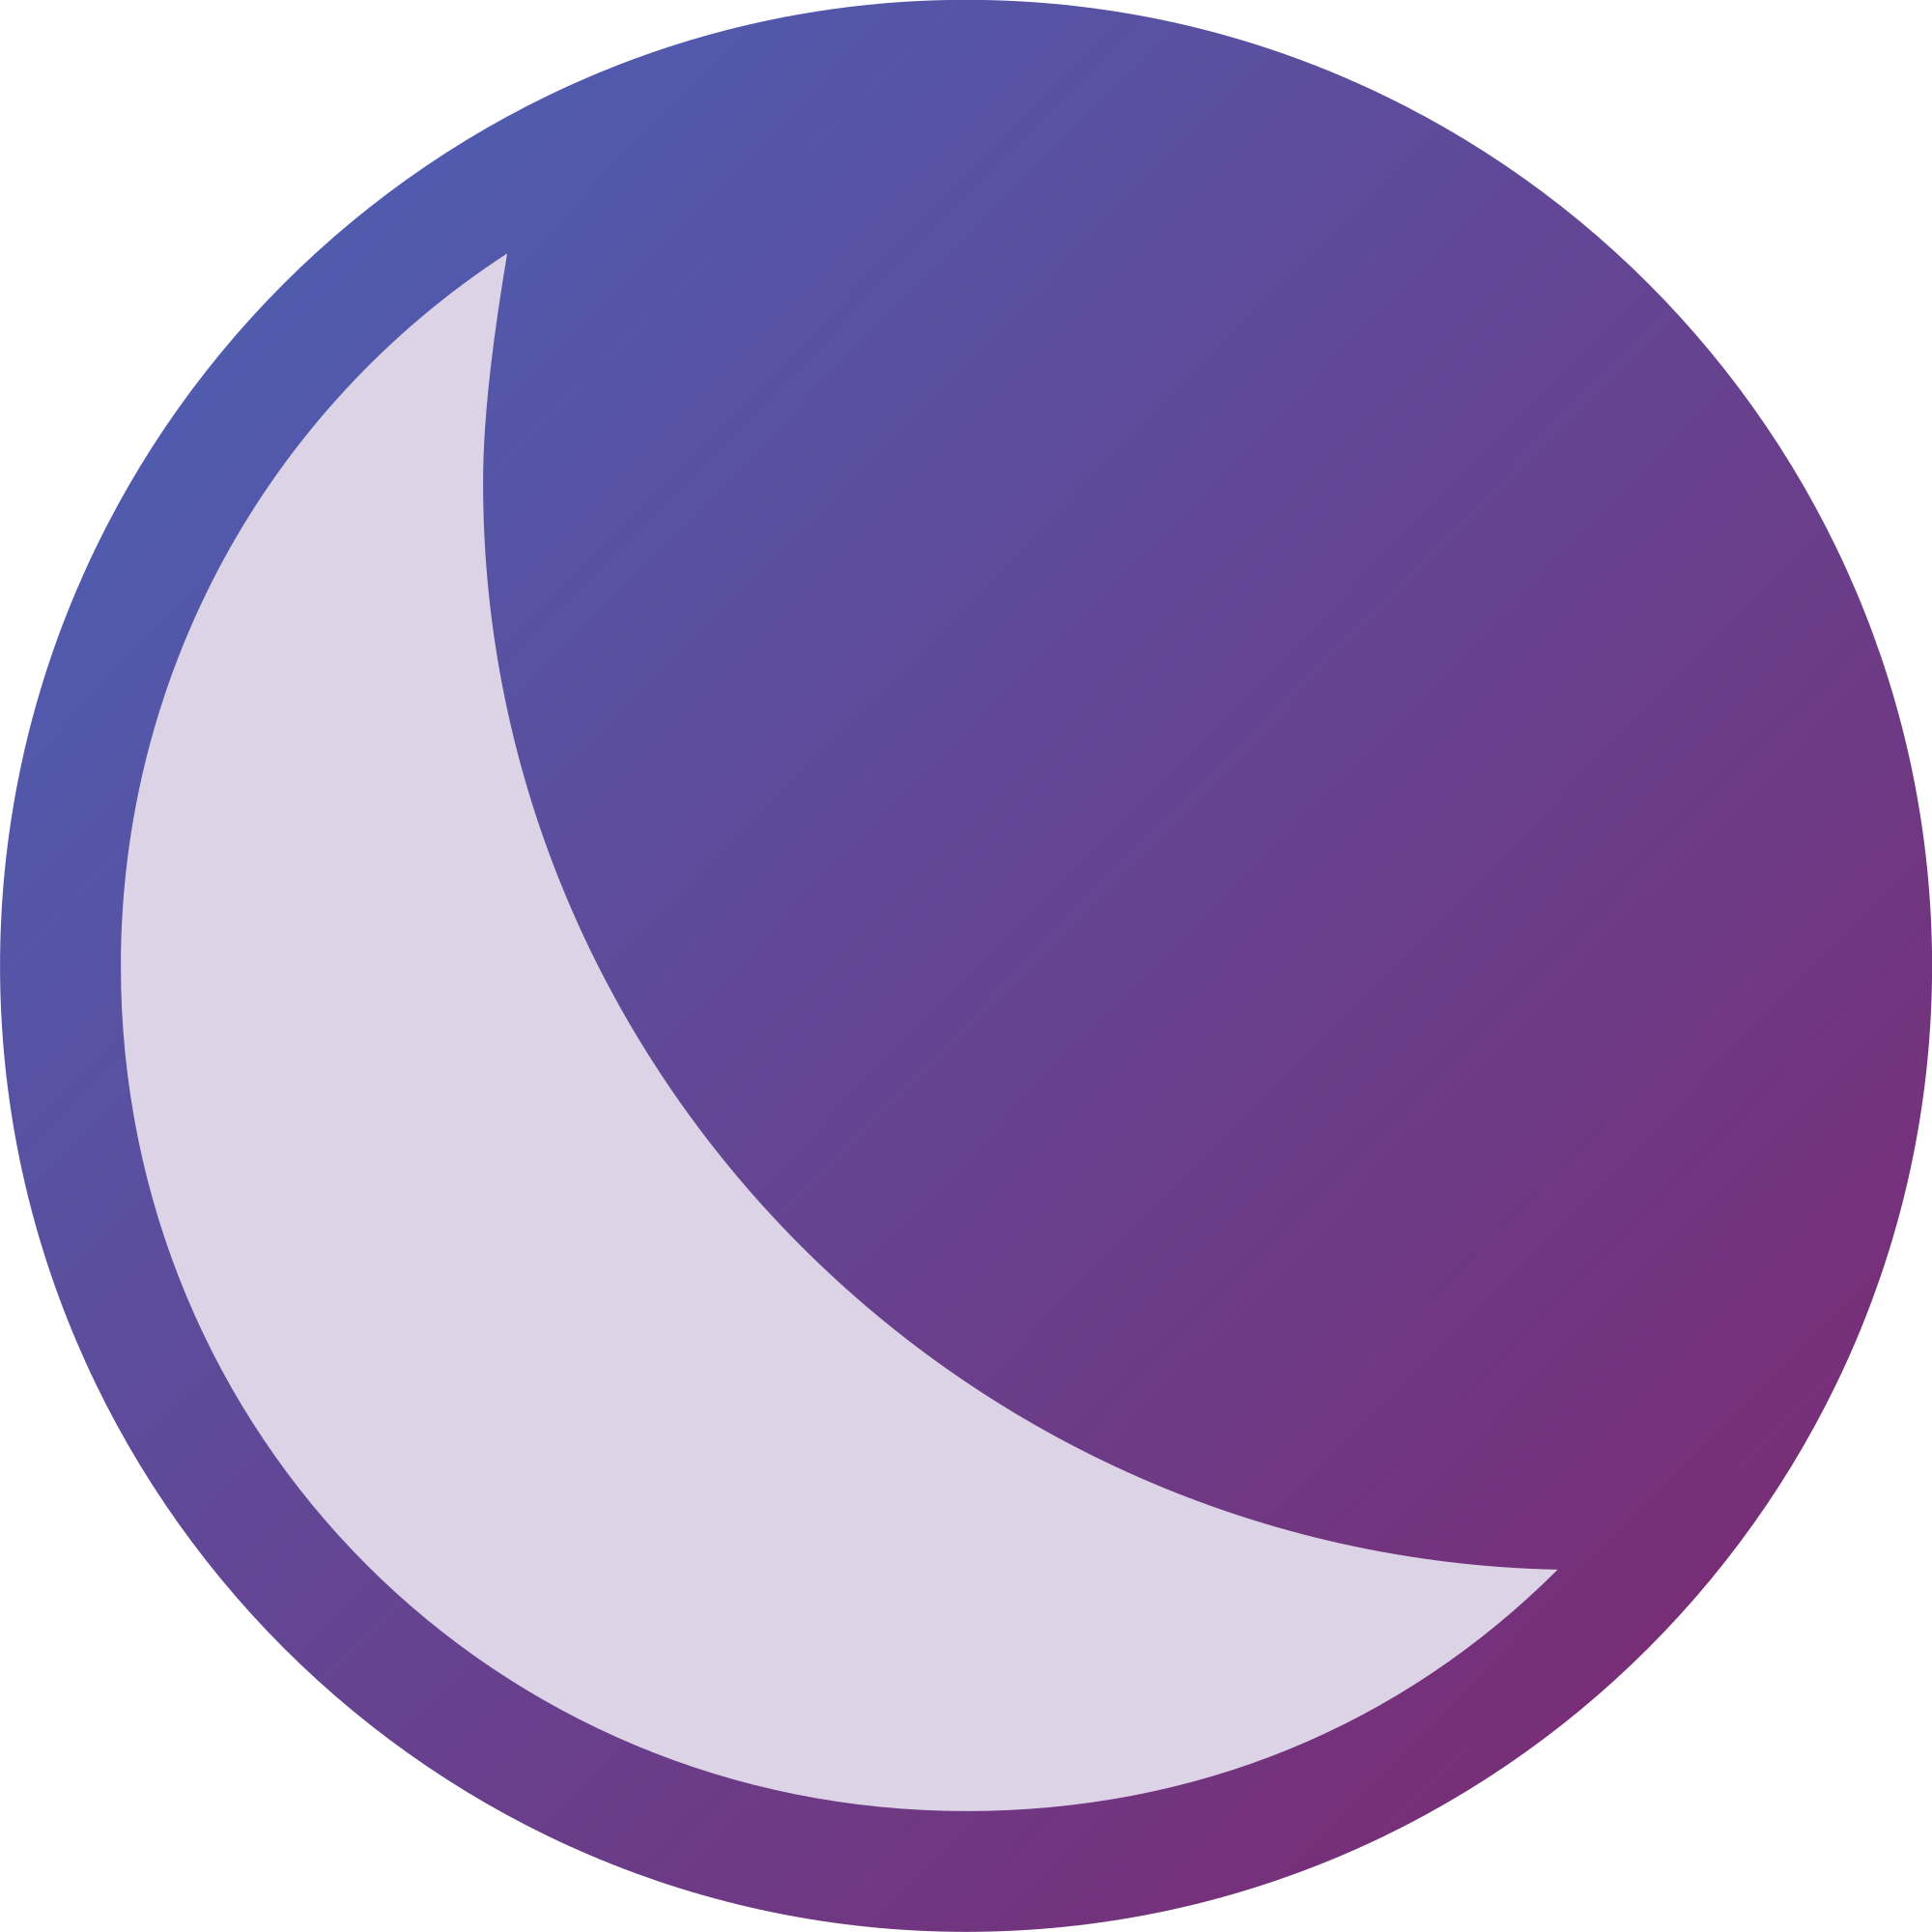 Eclipse svg #53, Download drawings